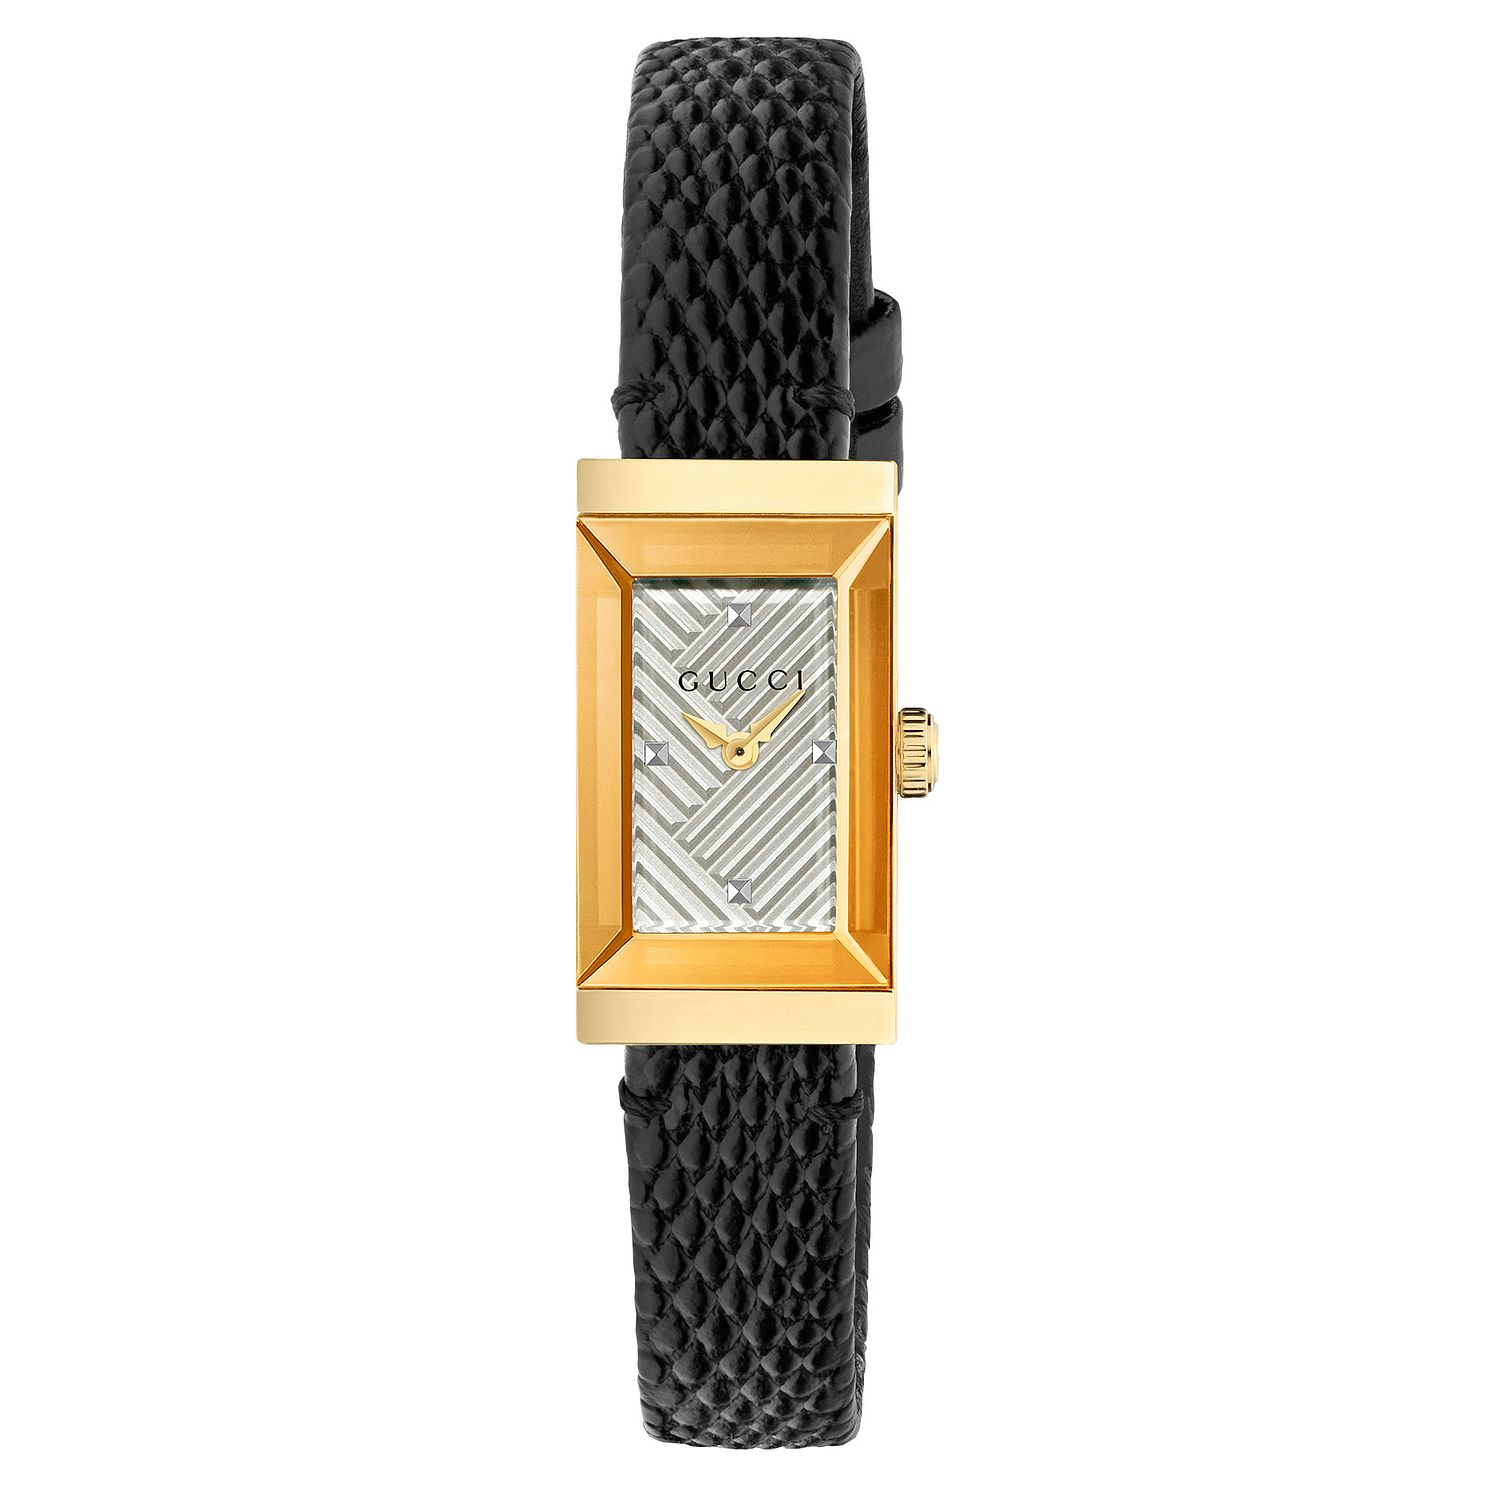 Gucci G-Frame Black Leather Strap Watch - Product number 8021309